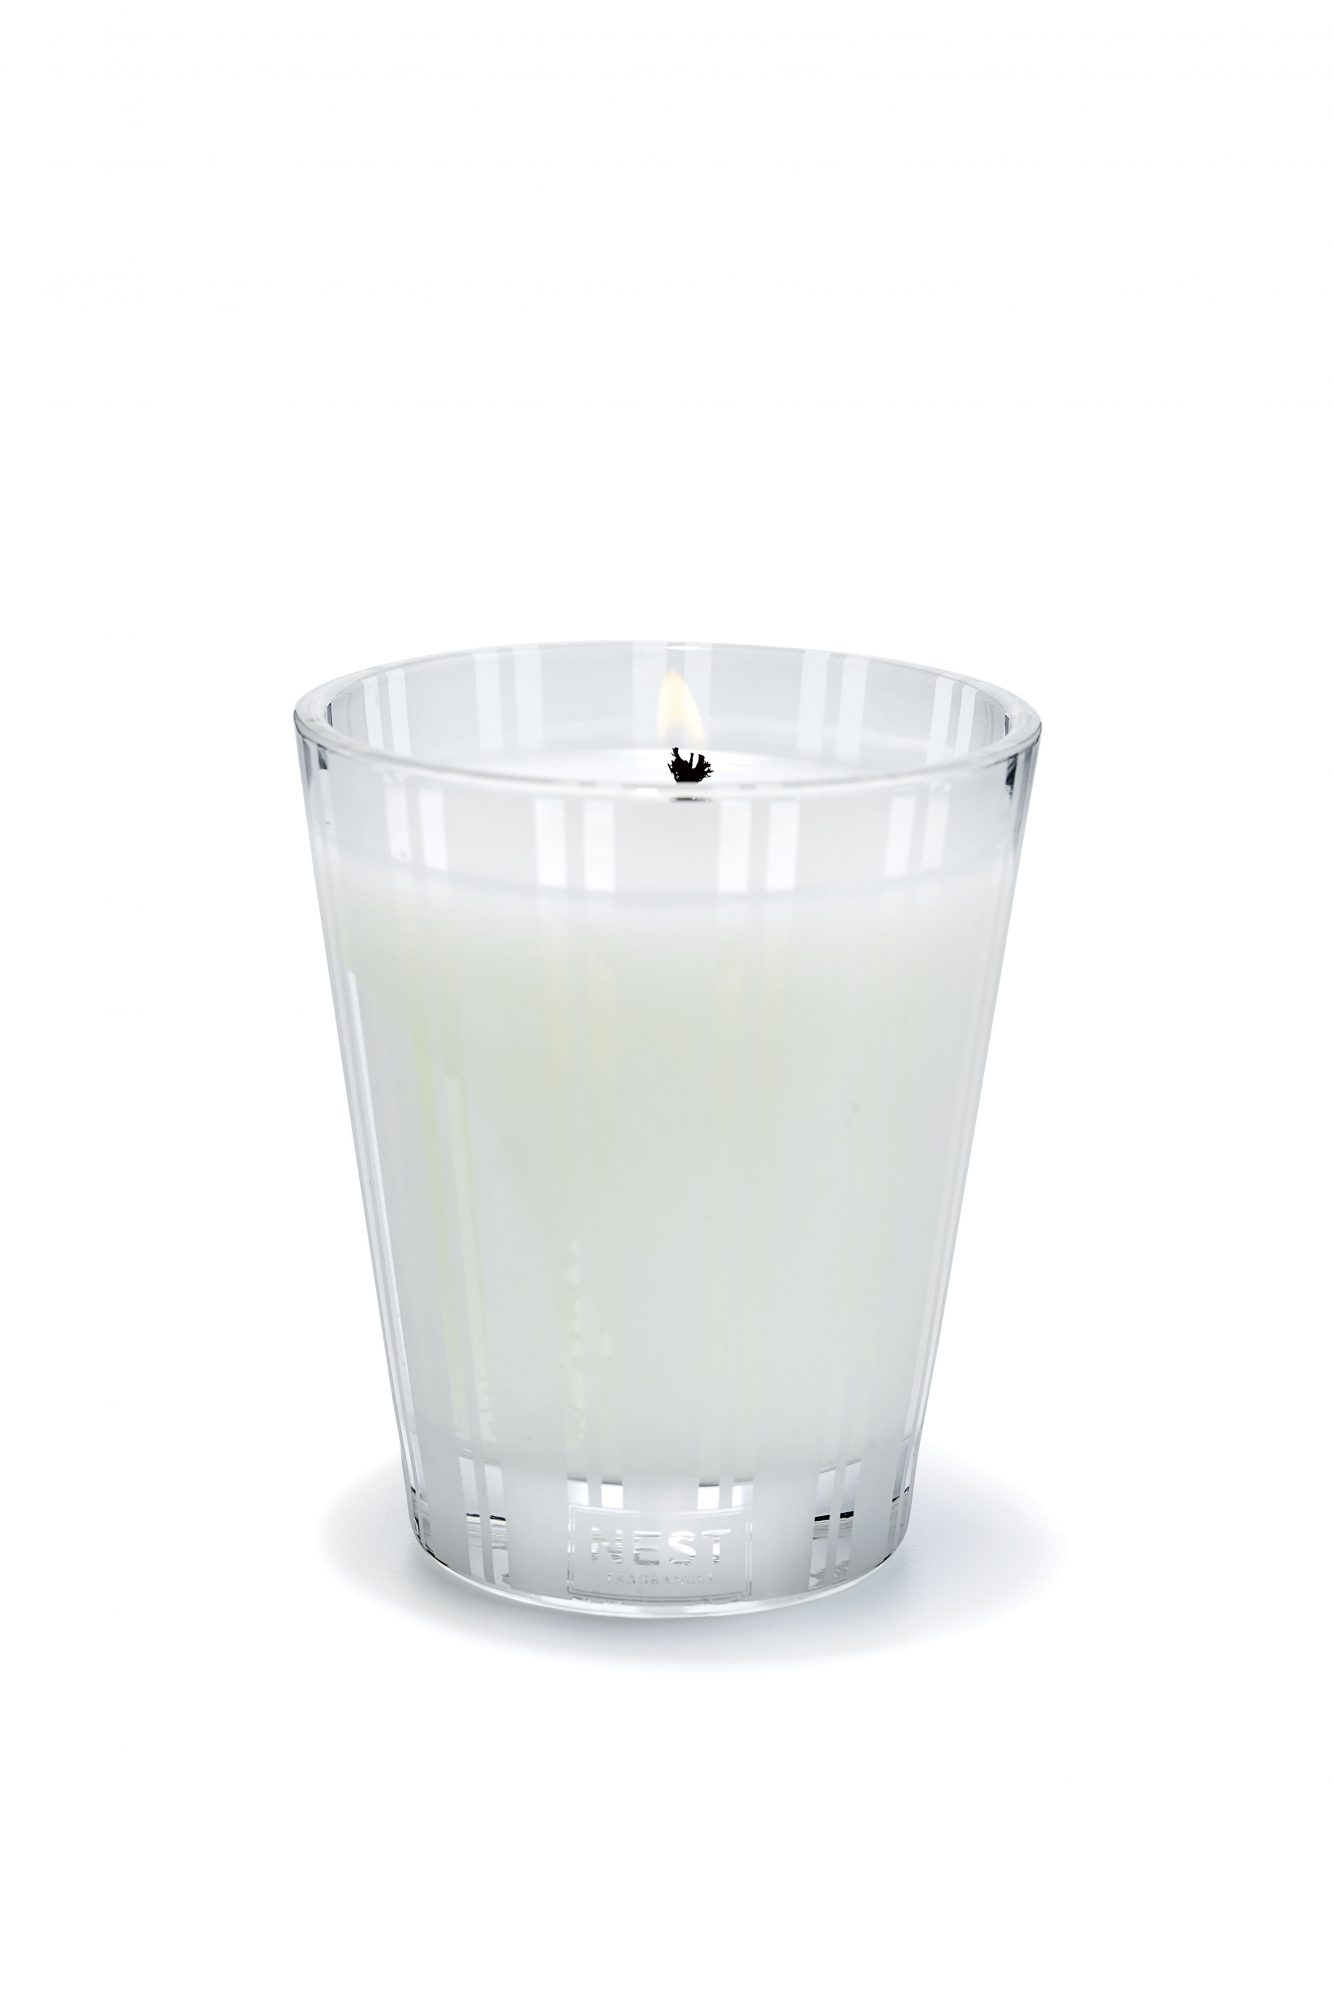 Nest Fragrances Bamboo Candle